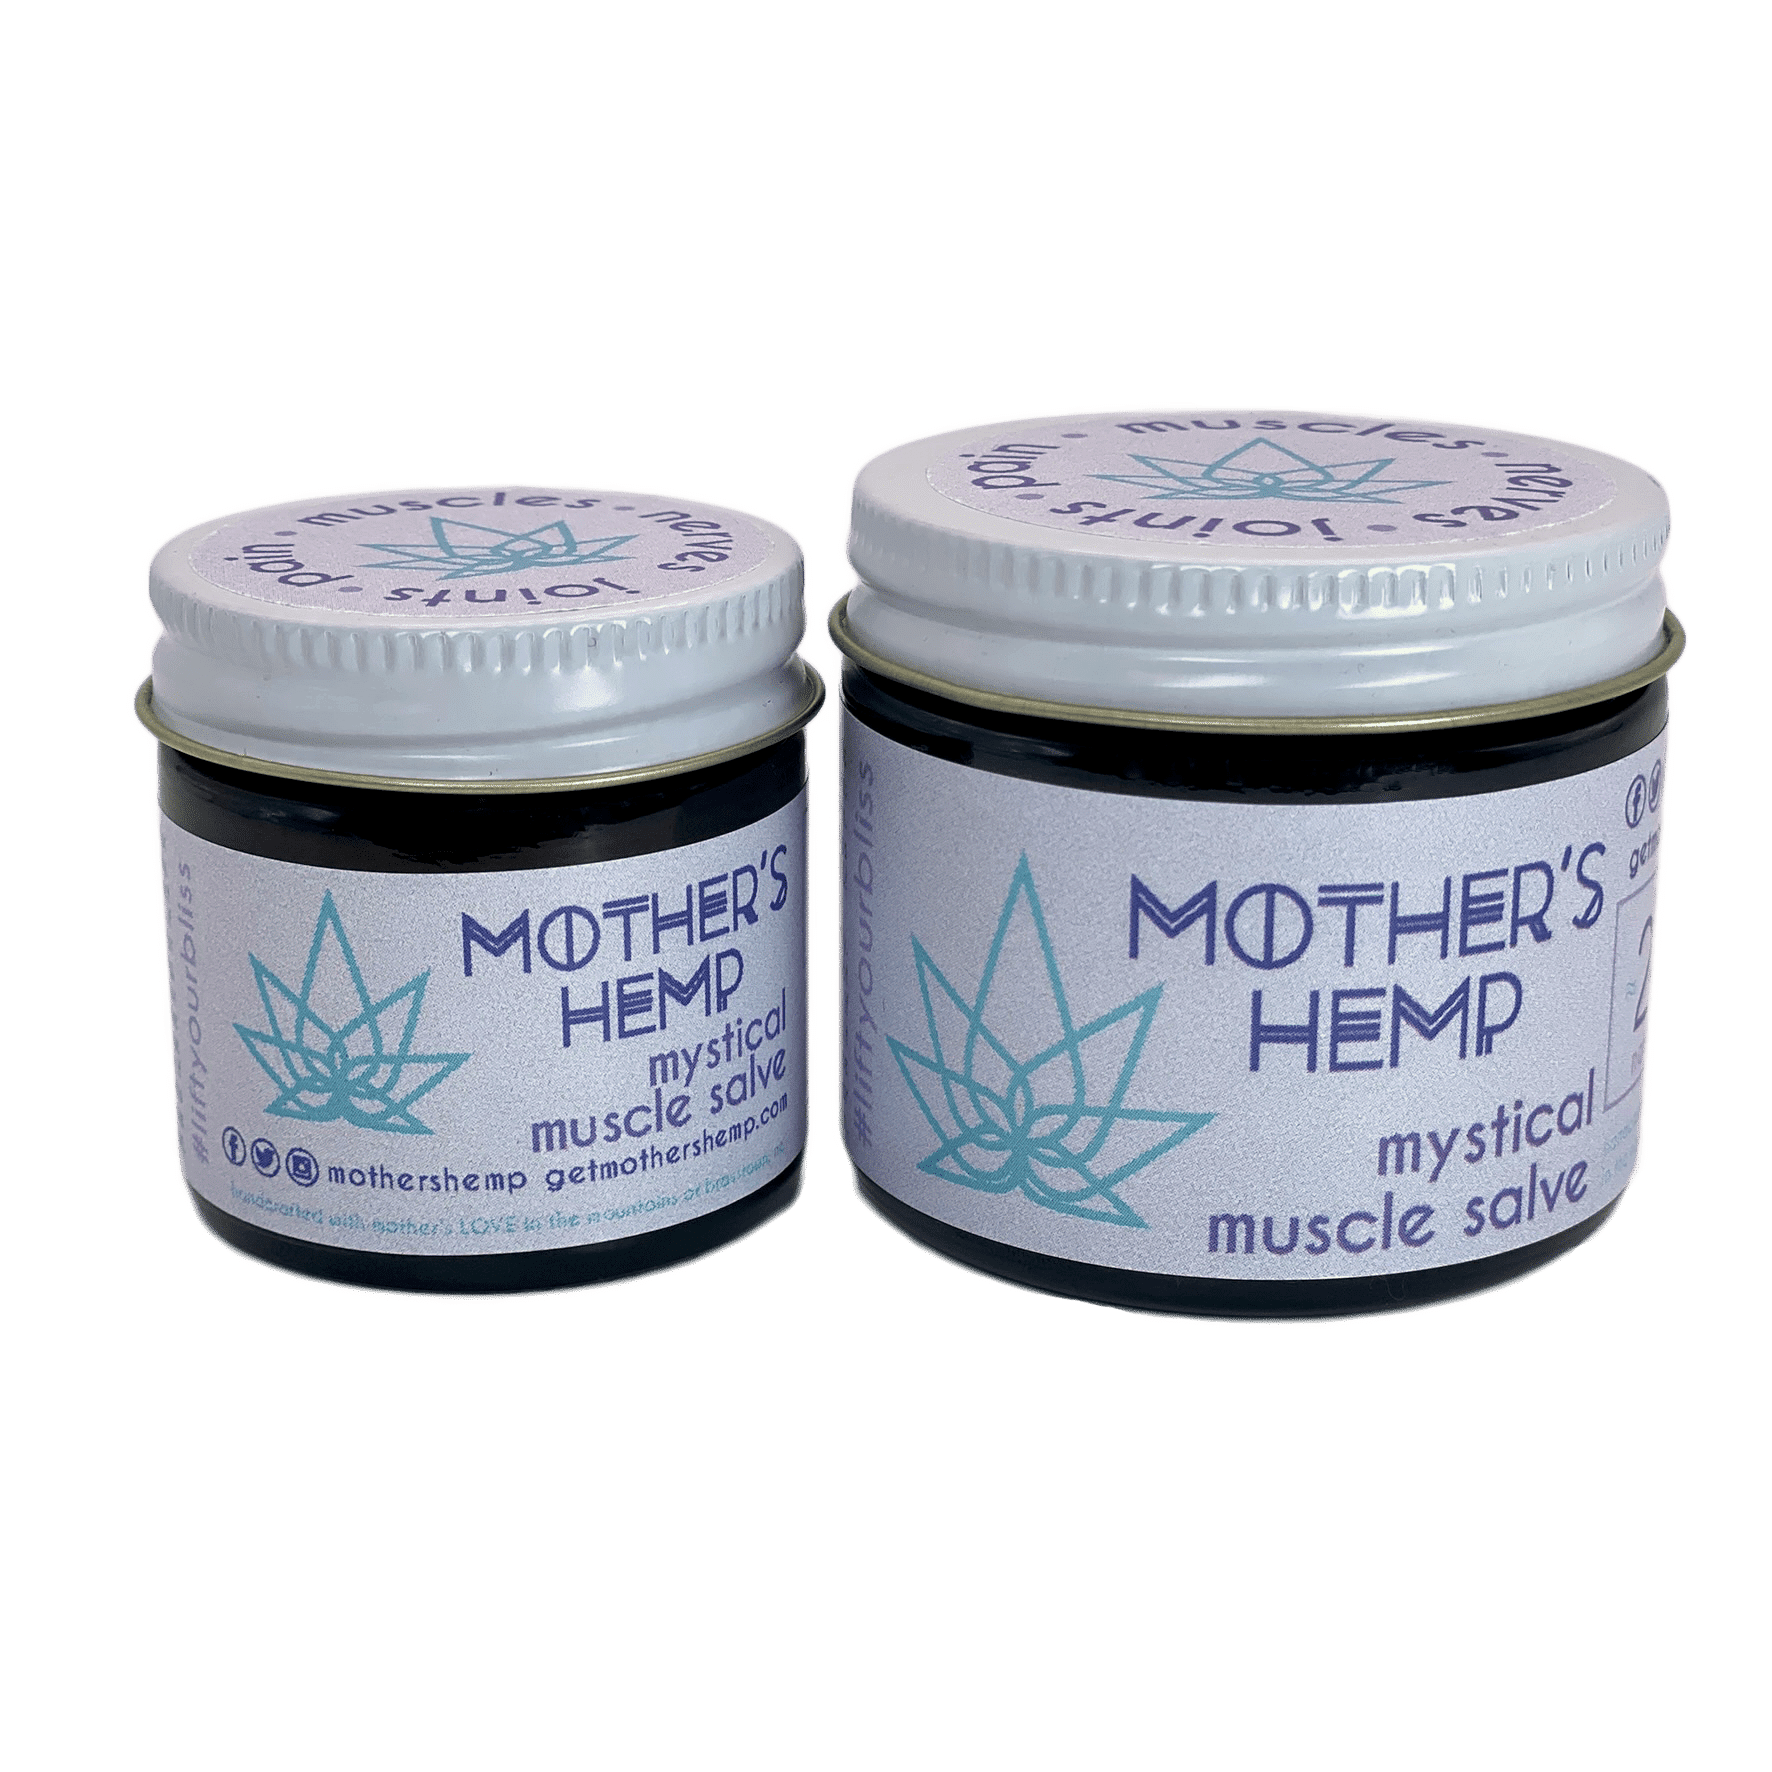 Mothers Hemp - Mystical Muscle Salve